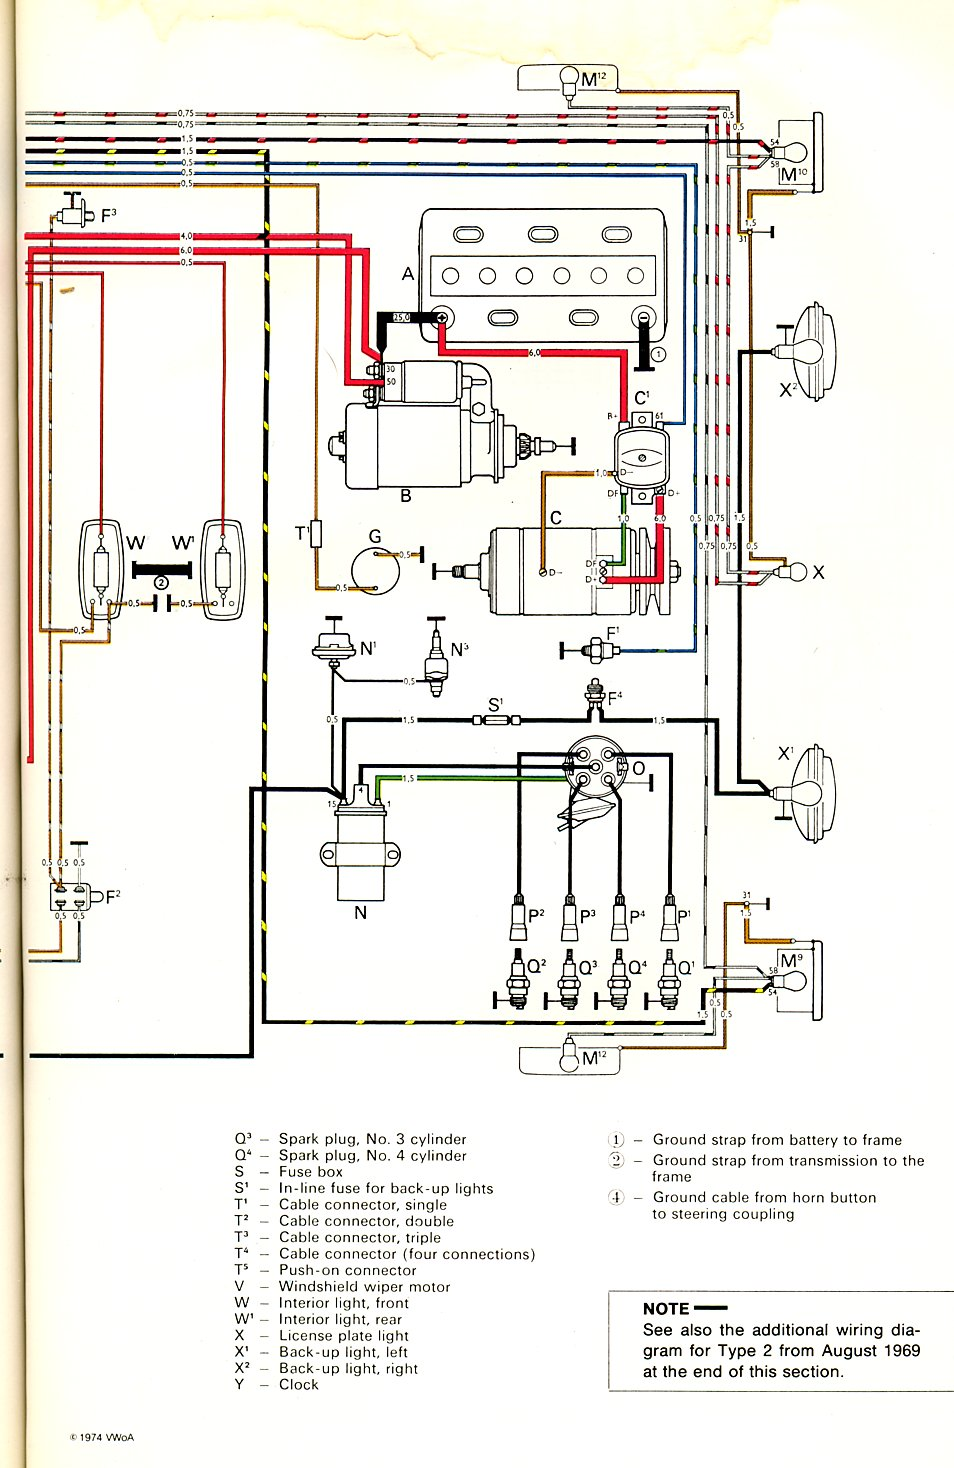 baybus_70b 1970 bus wiring diagram thegoldenbug com 1968 vw bus fuse box at eliteediting.co